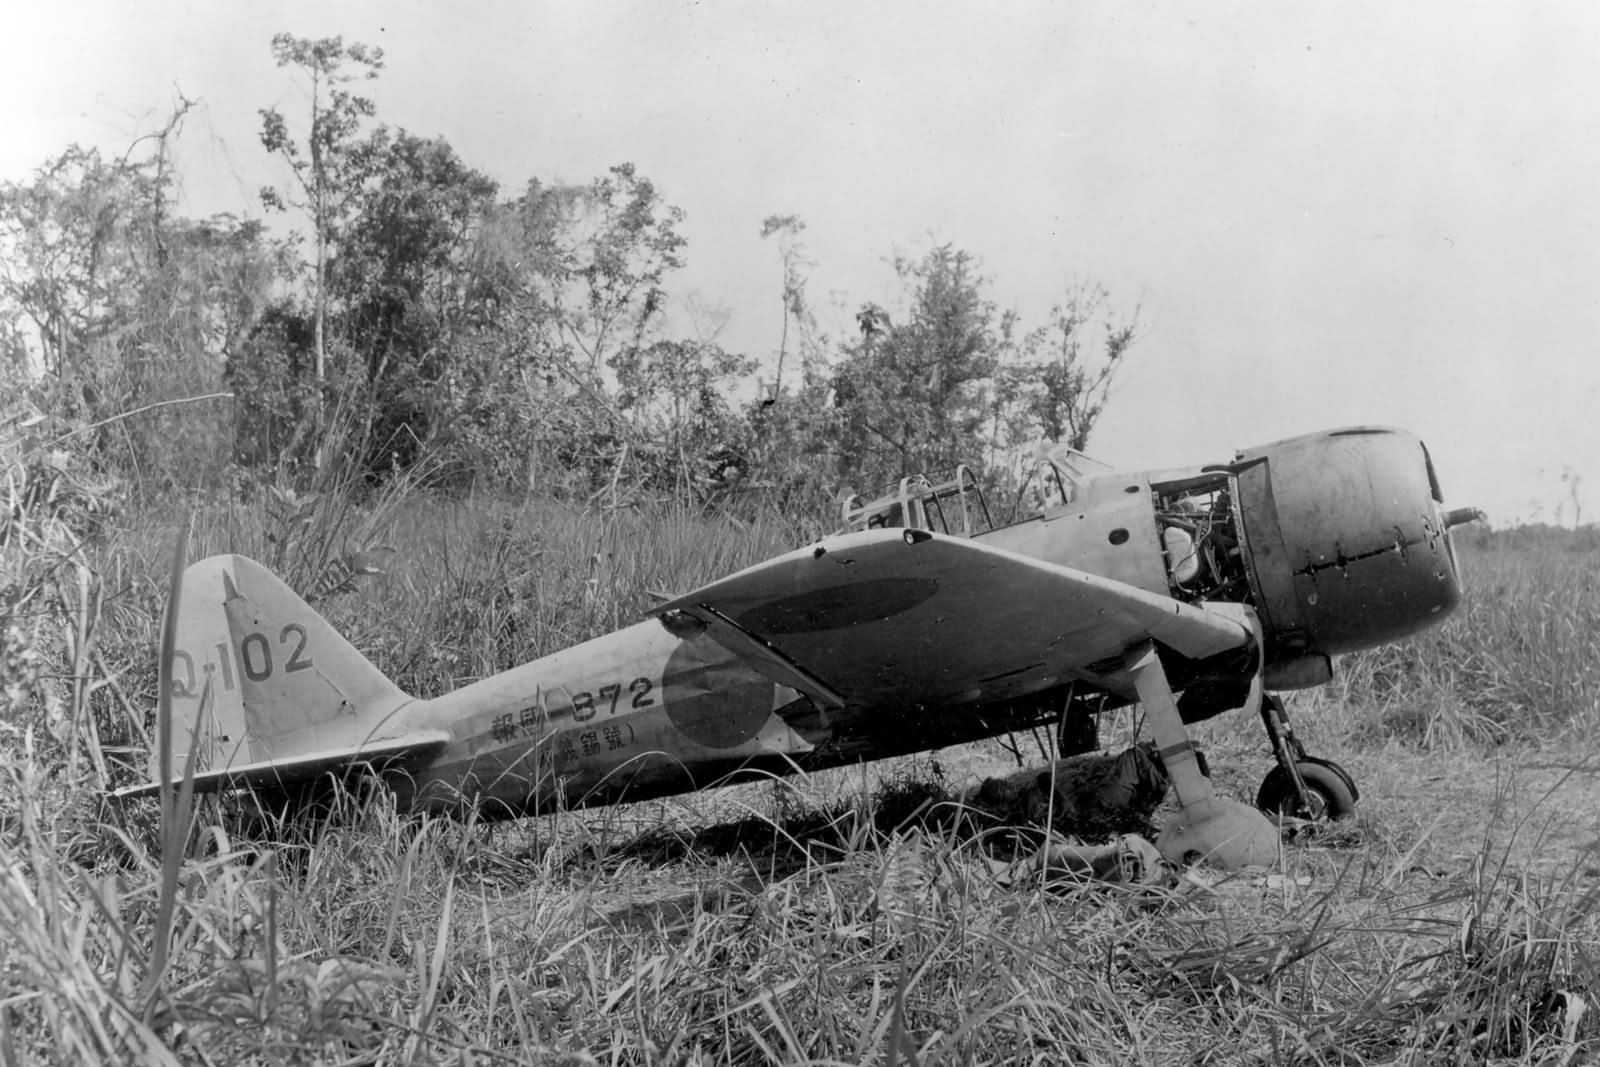 http://www.worldwarphotos.info/wp-content/gallery/japan/aircrafts/a6m-zero/A6M3_Zero_Hamp_at_Buna_1943_Q-102.jpg